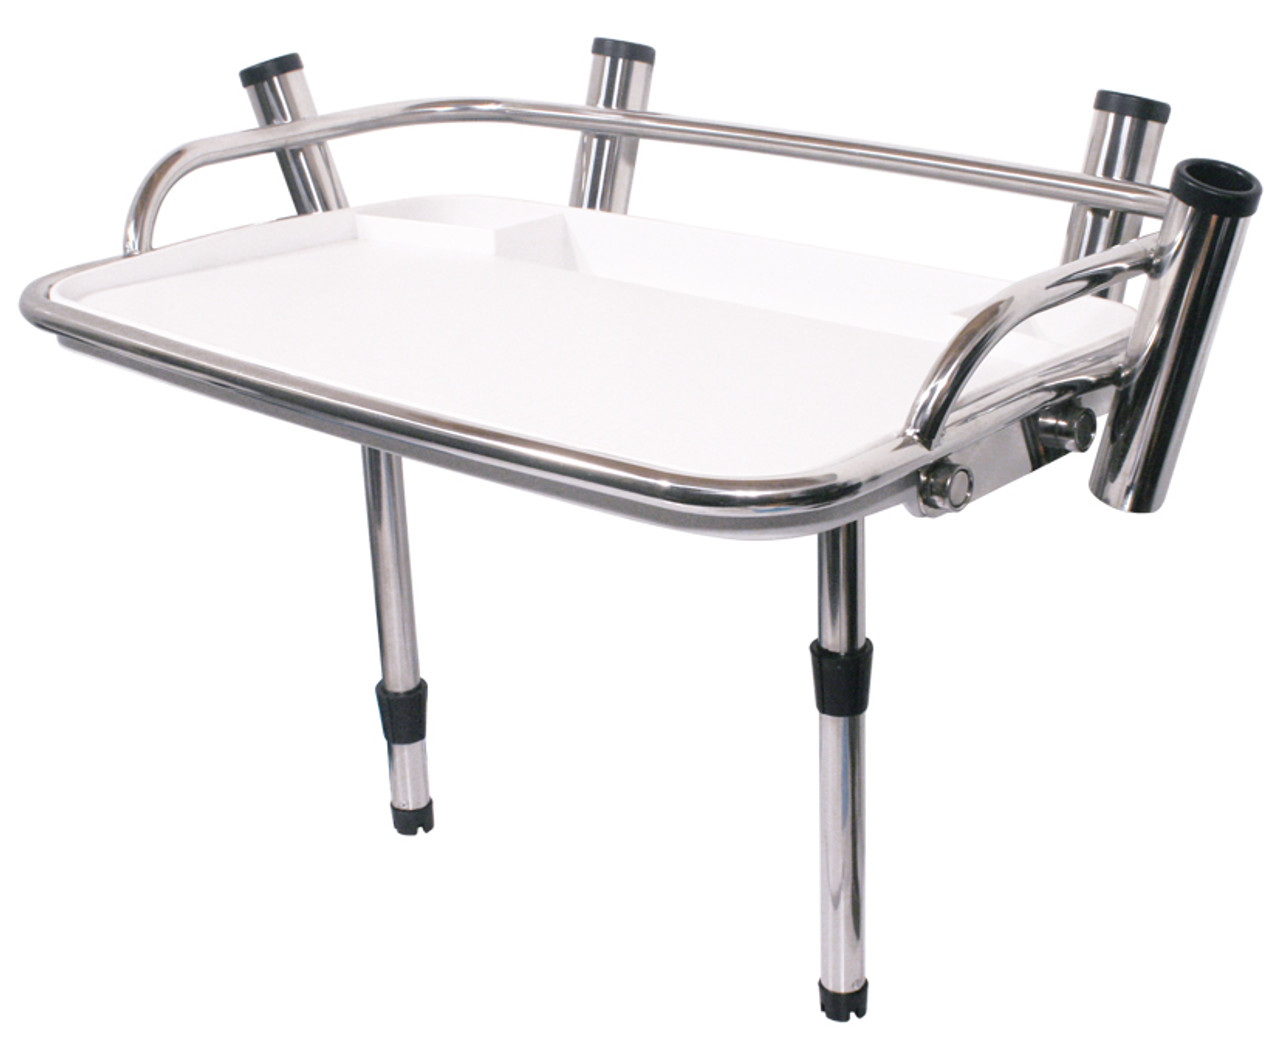 AXIS Stainless Bait Board with Rod Holders